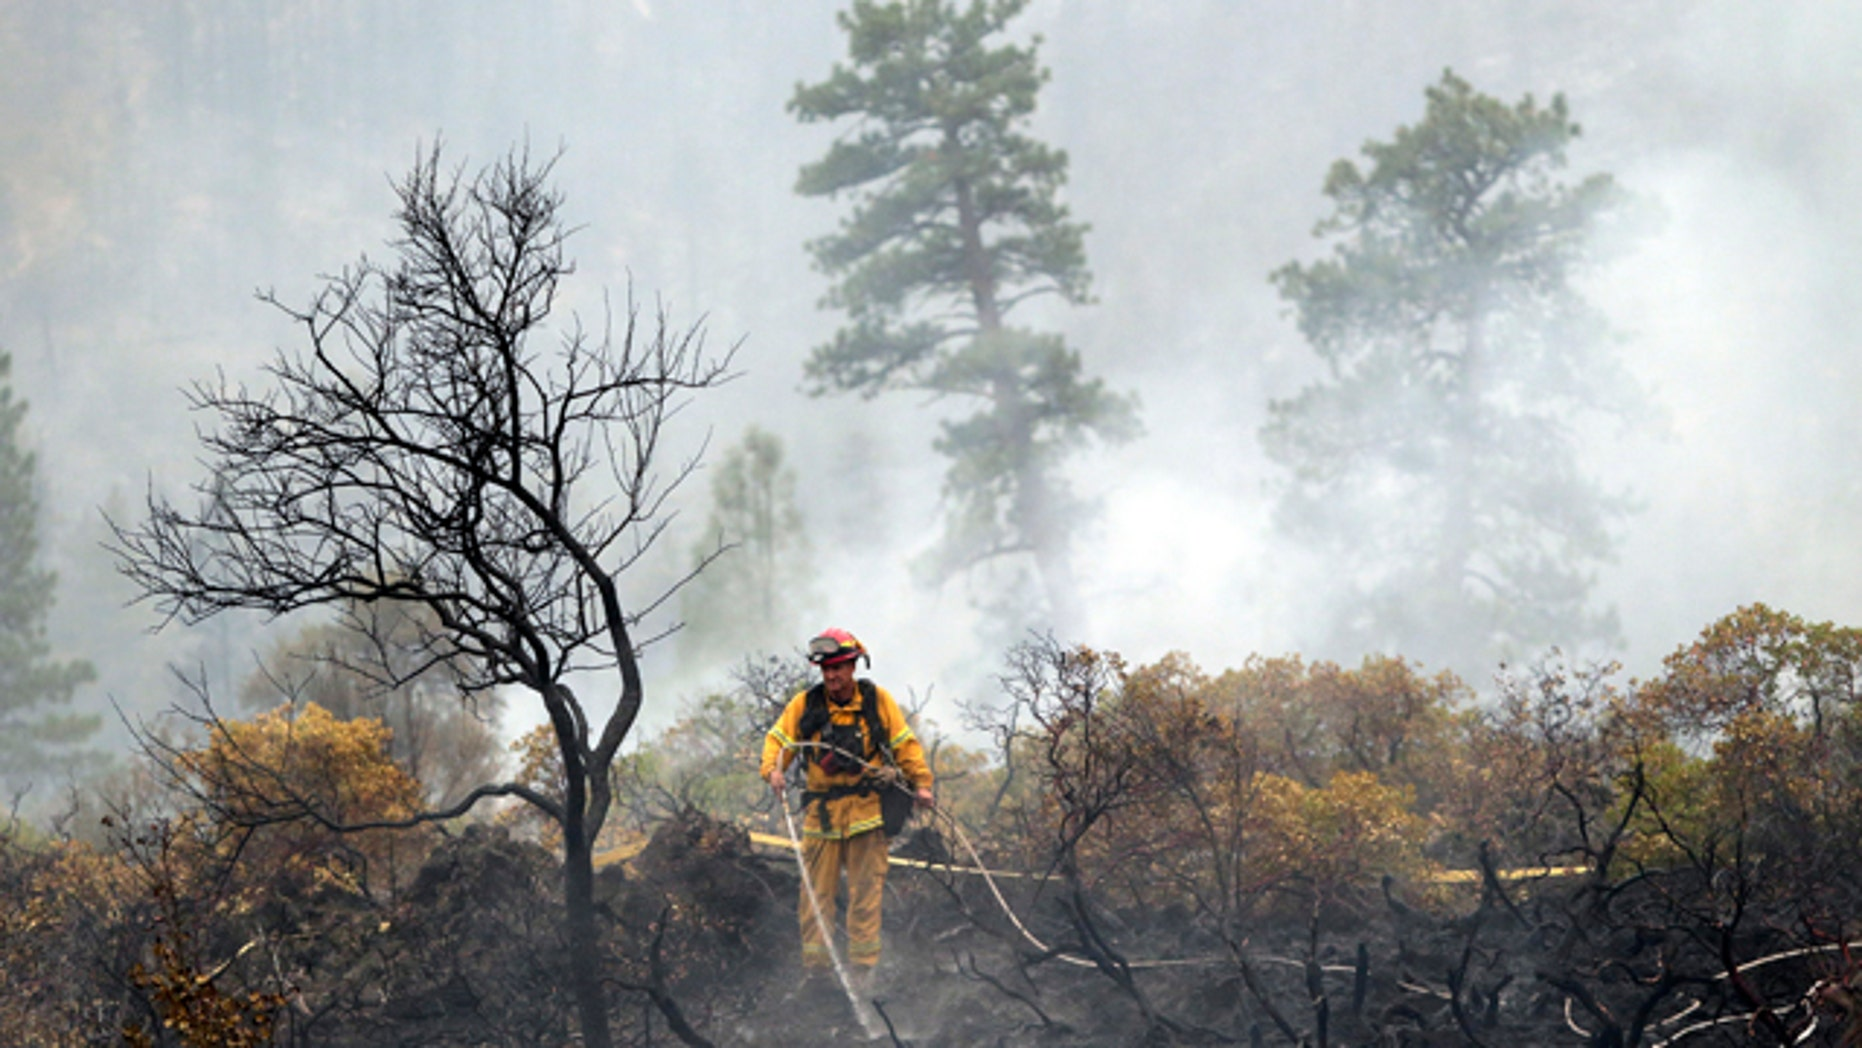 August 4, 2014: A firefighter with the Anderson, Calif., Fire Protection District douses hot spots left behind by the Eiler Fire along Highway 89 near Burney, Calif. (AP Photo/Marcio Jose Sanchez)